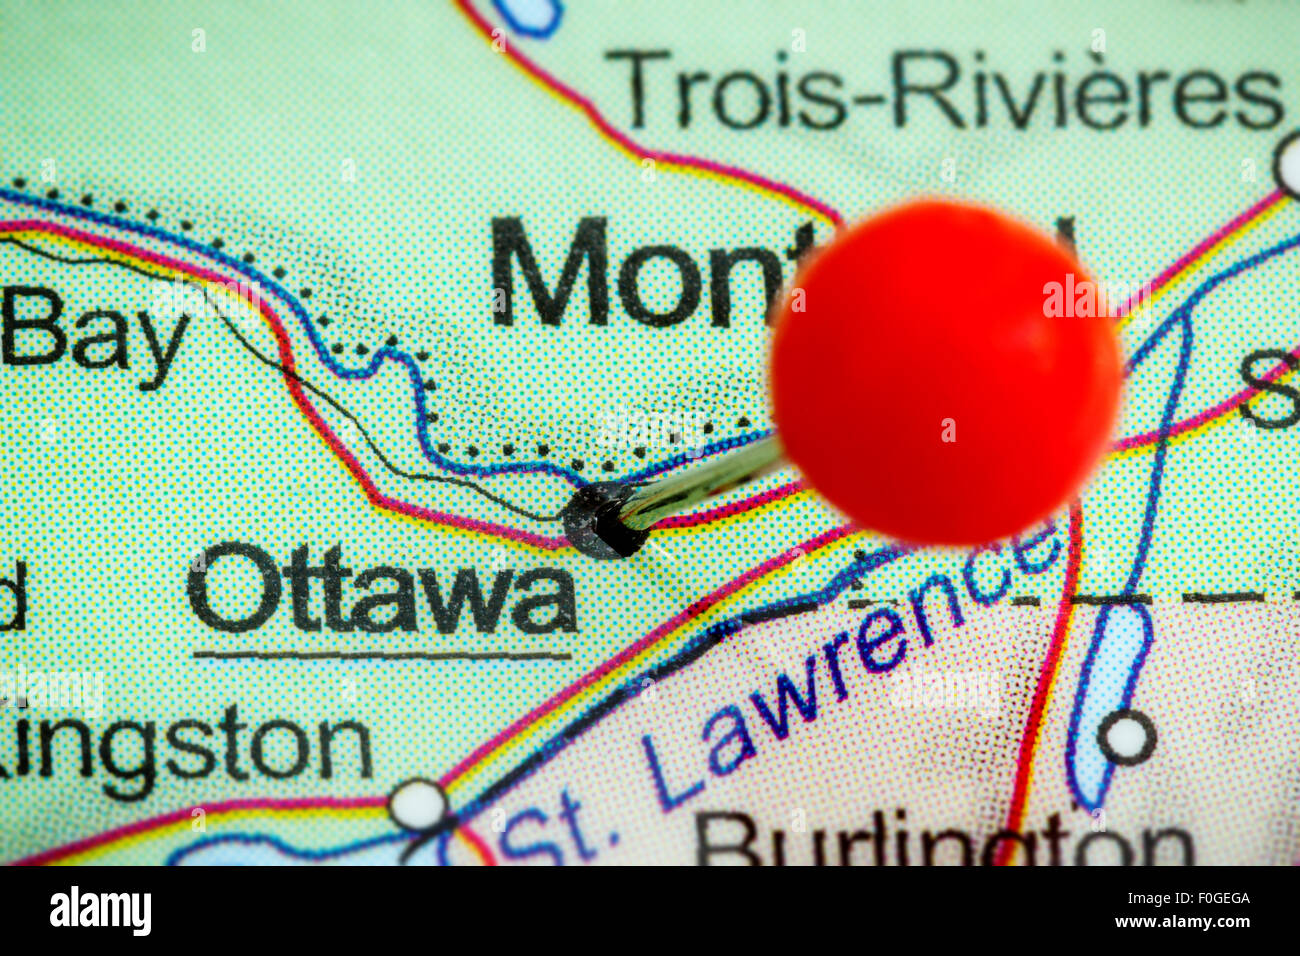 Map Of Ottawa Canada.Close Up Of A Red Pushpin On A Map Of Ottawa Canada Stock Photo